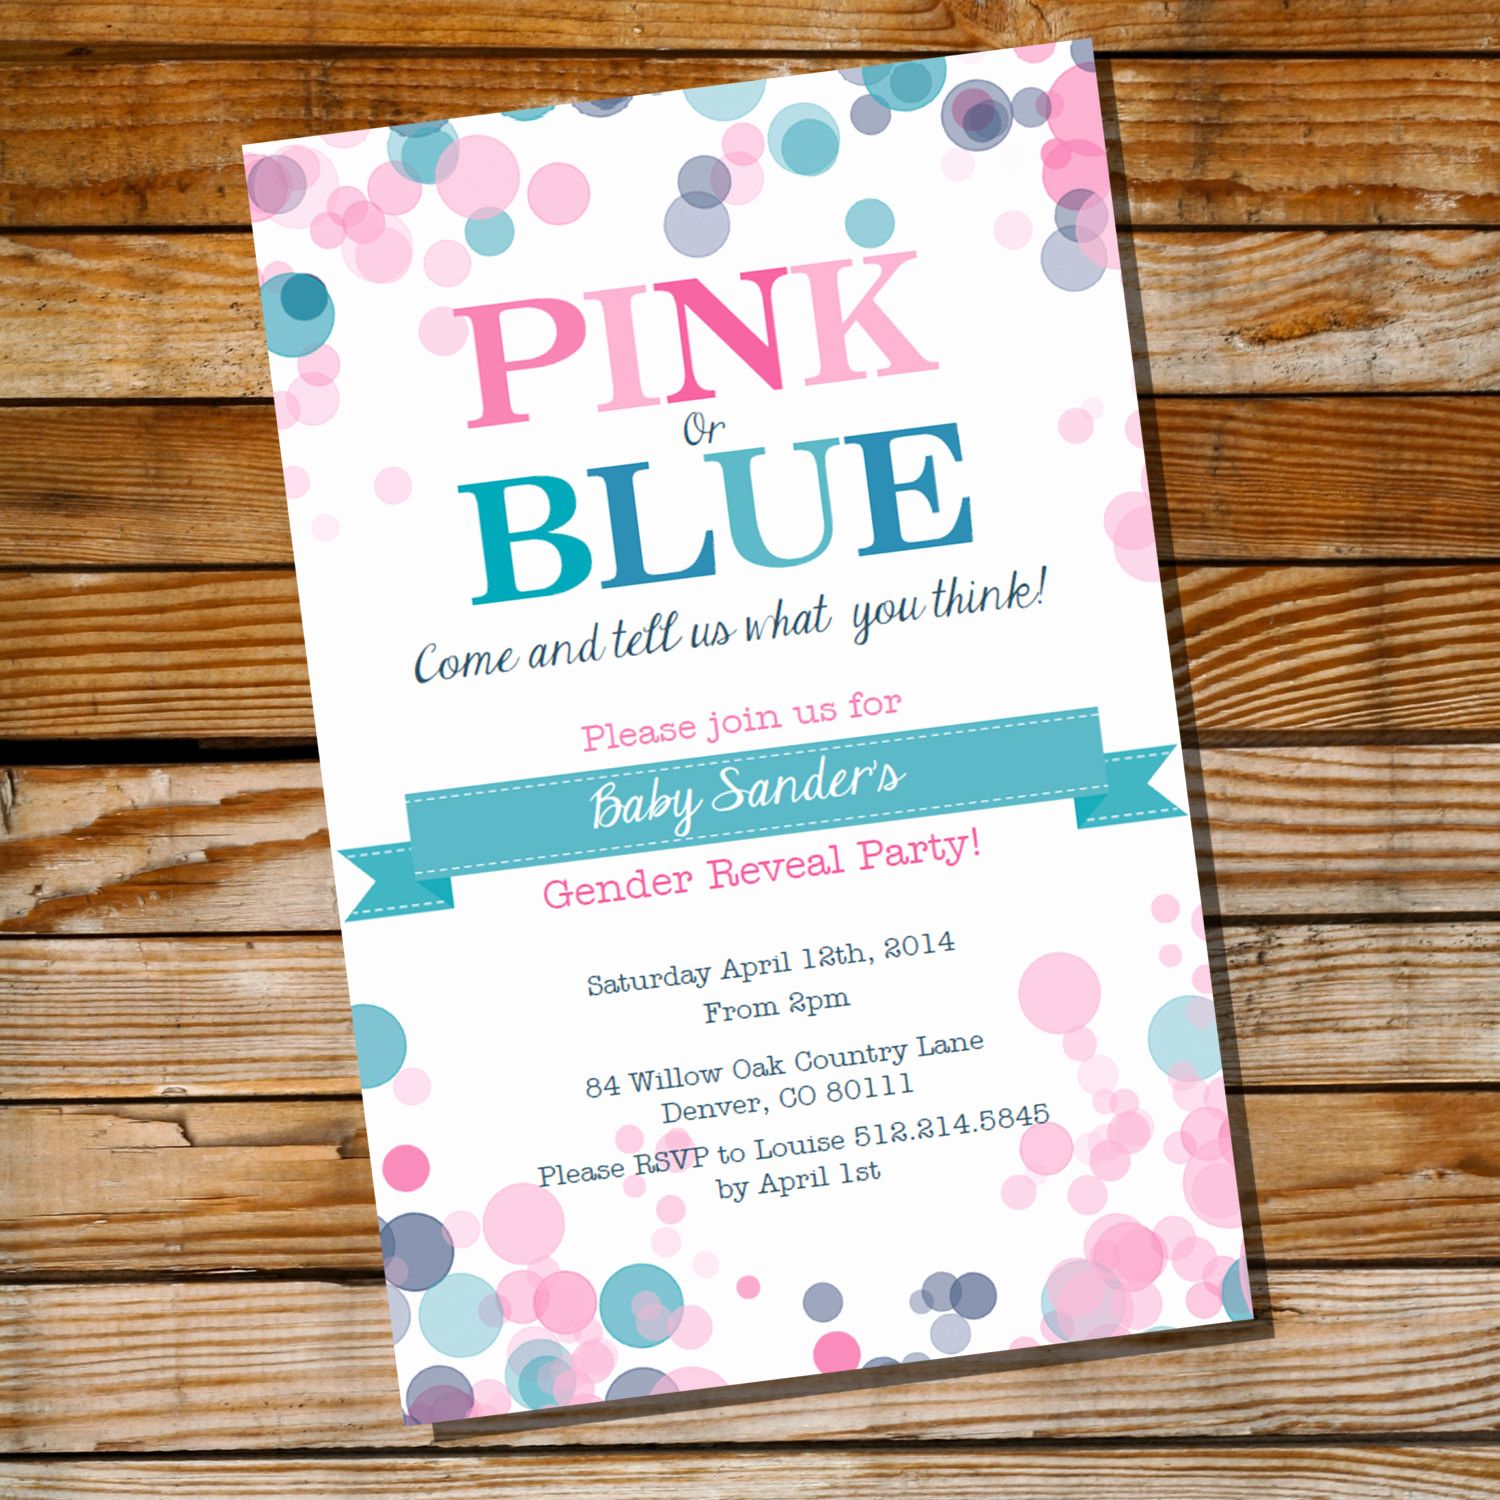 Gender Reveal Invitation Ideas Fresh Gender Reveal Party Invitation Pink or Blue Instantly